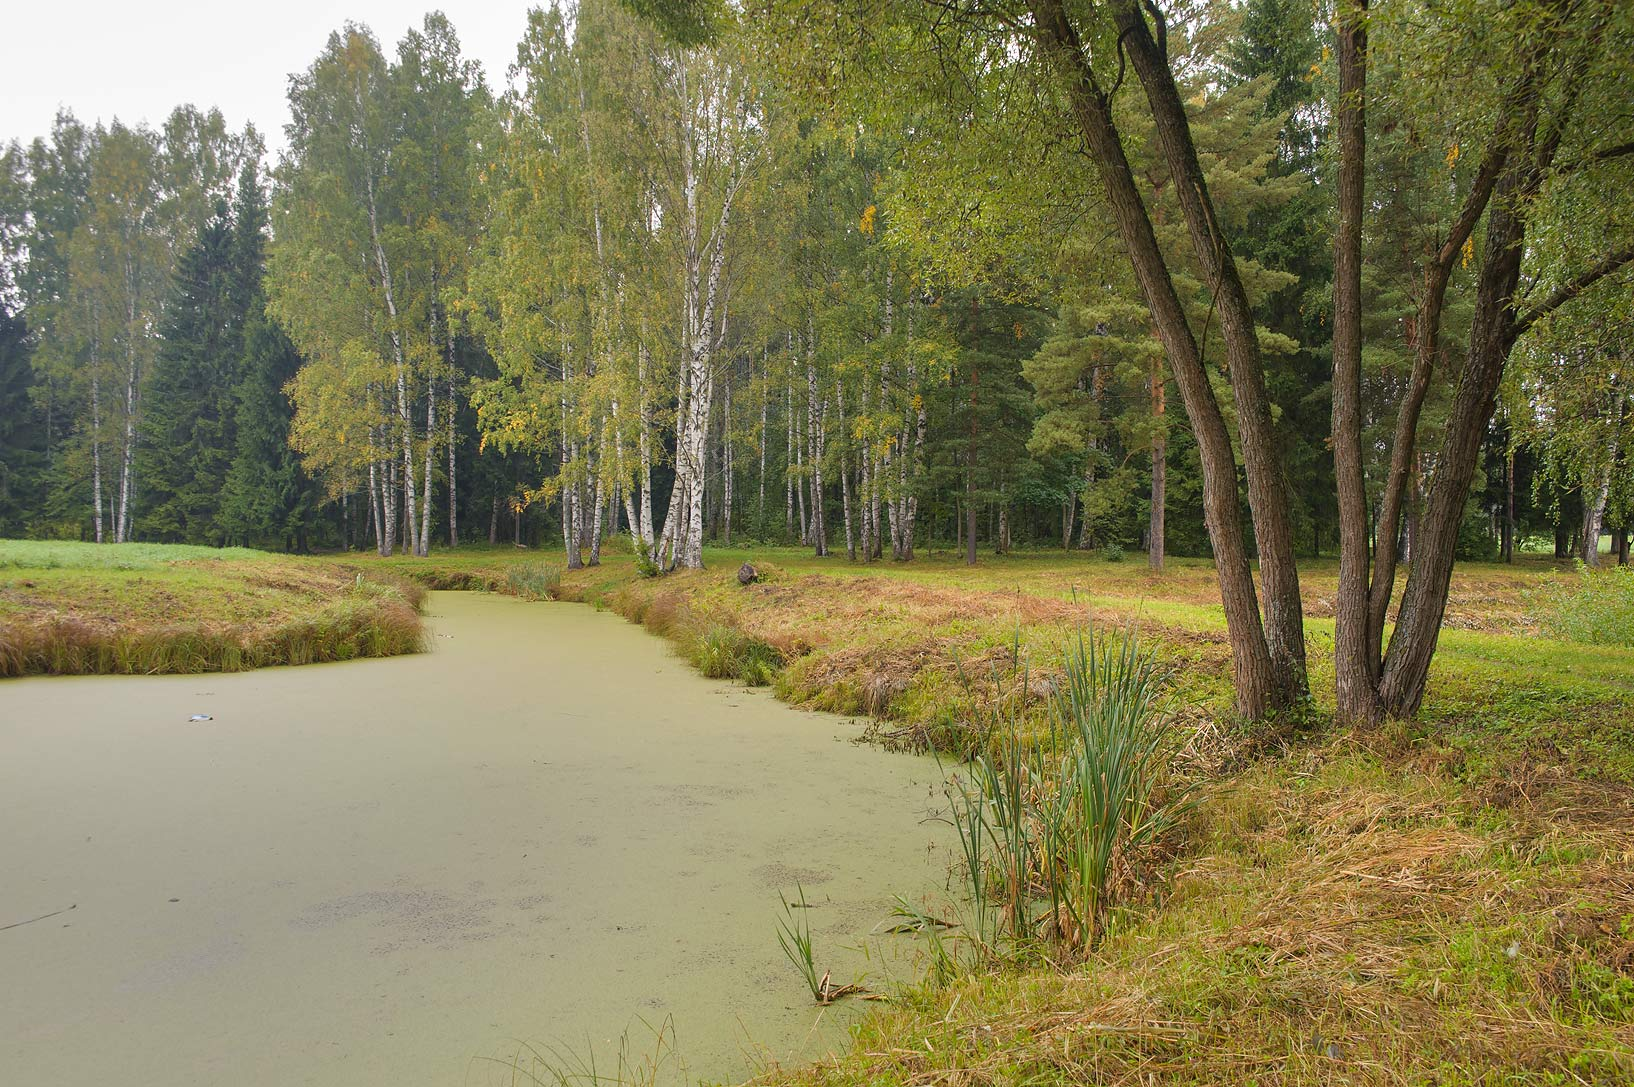 First Kruglozalny Pond in area of Bolshaya Zvezda...a suburb of St.Petersburg, Russia